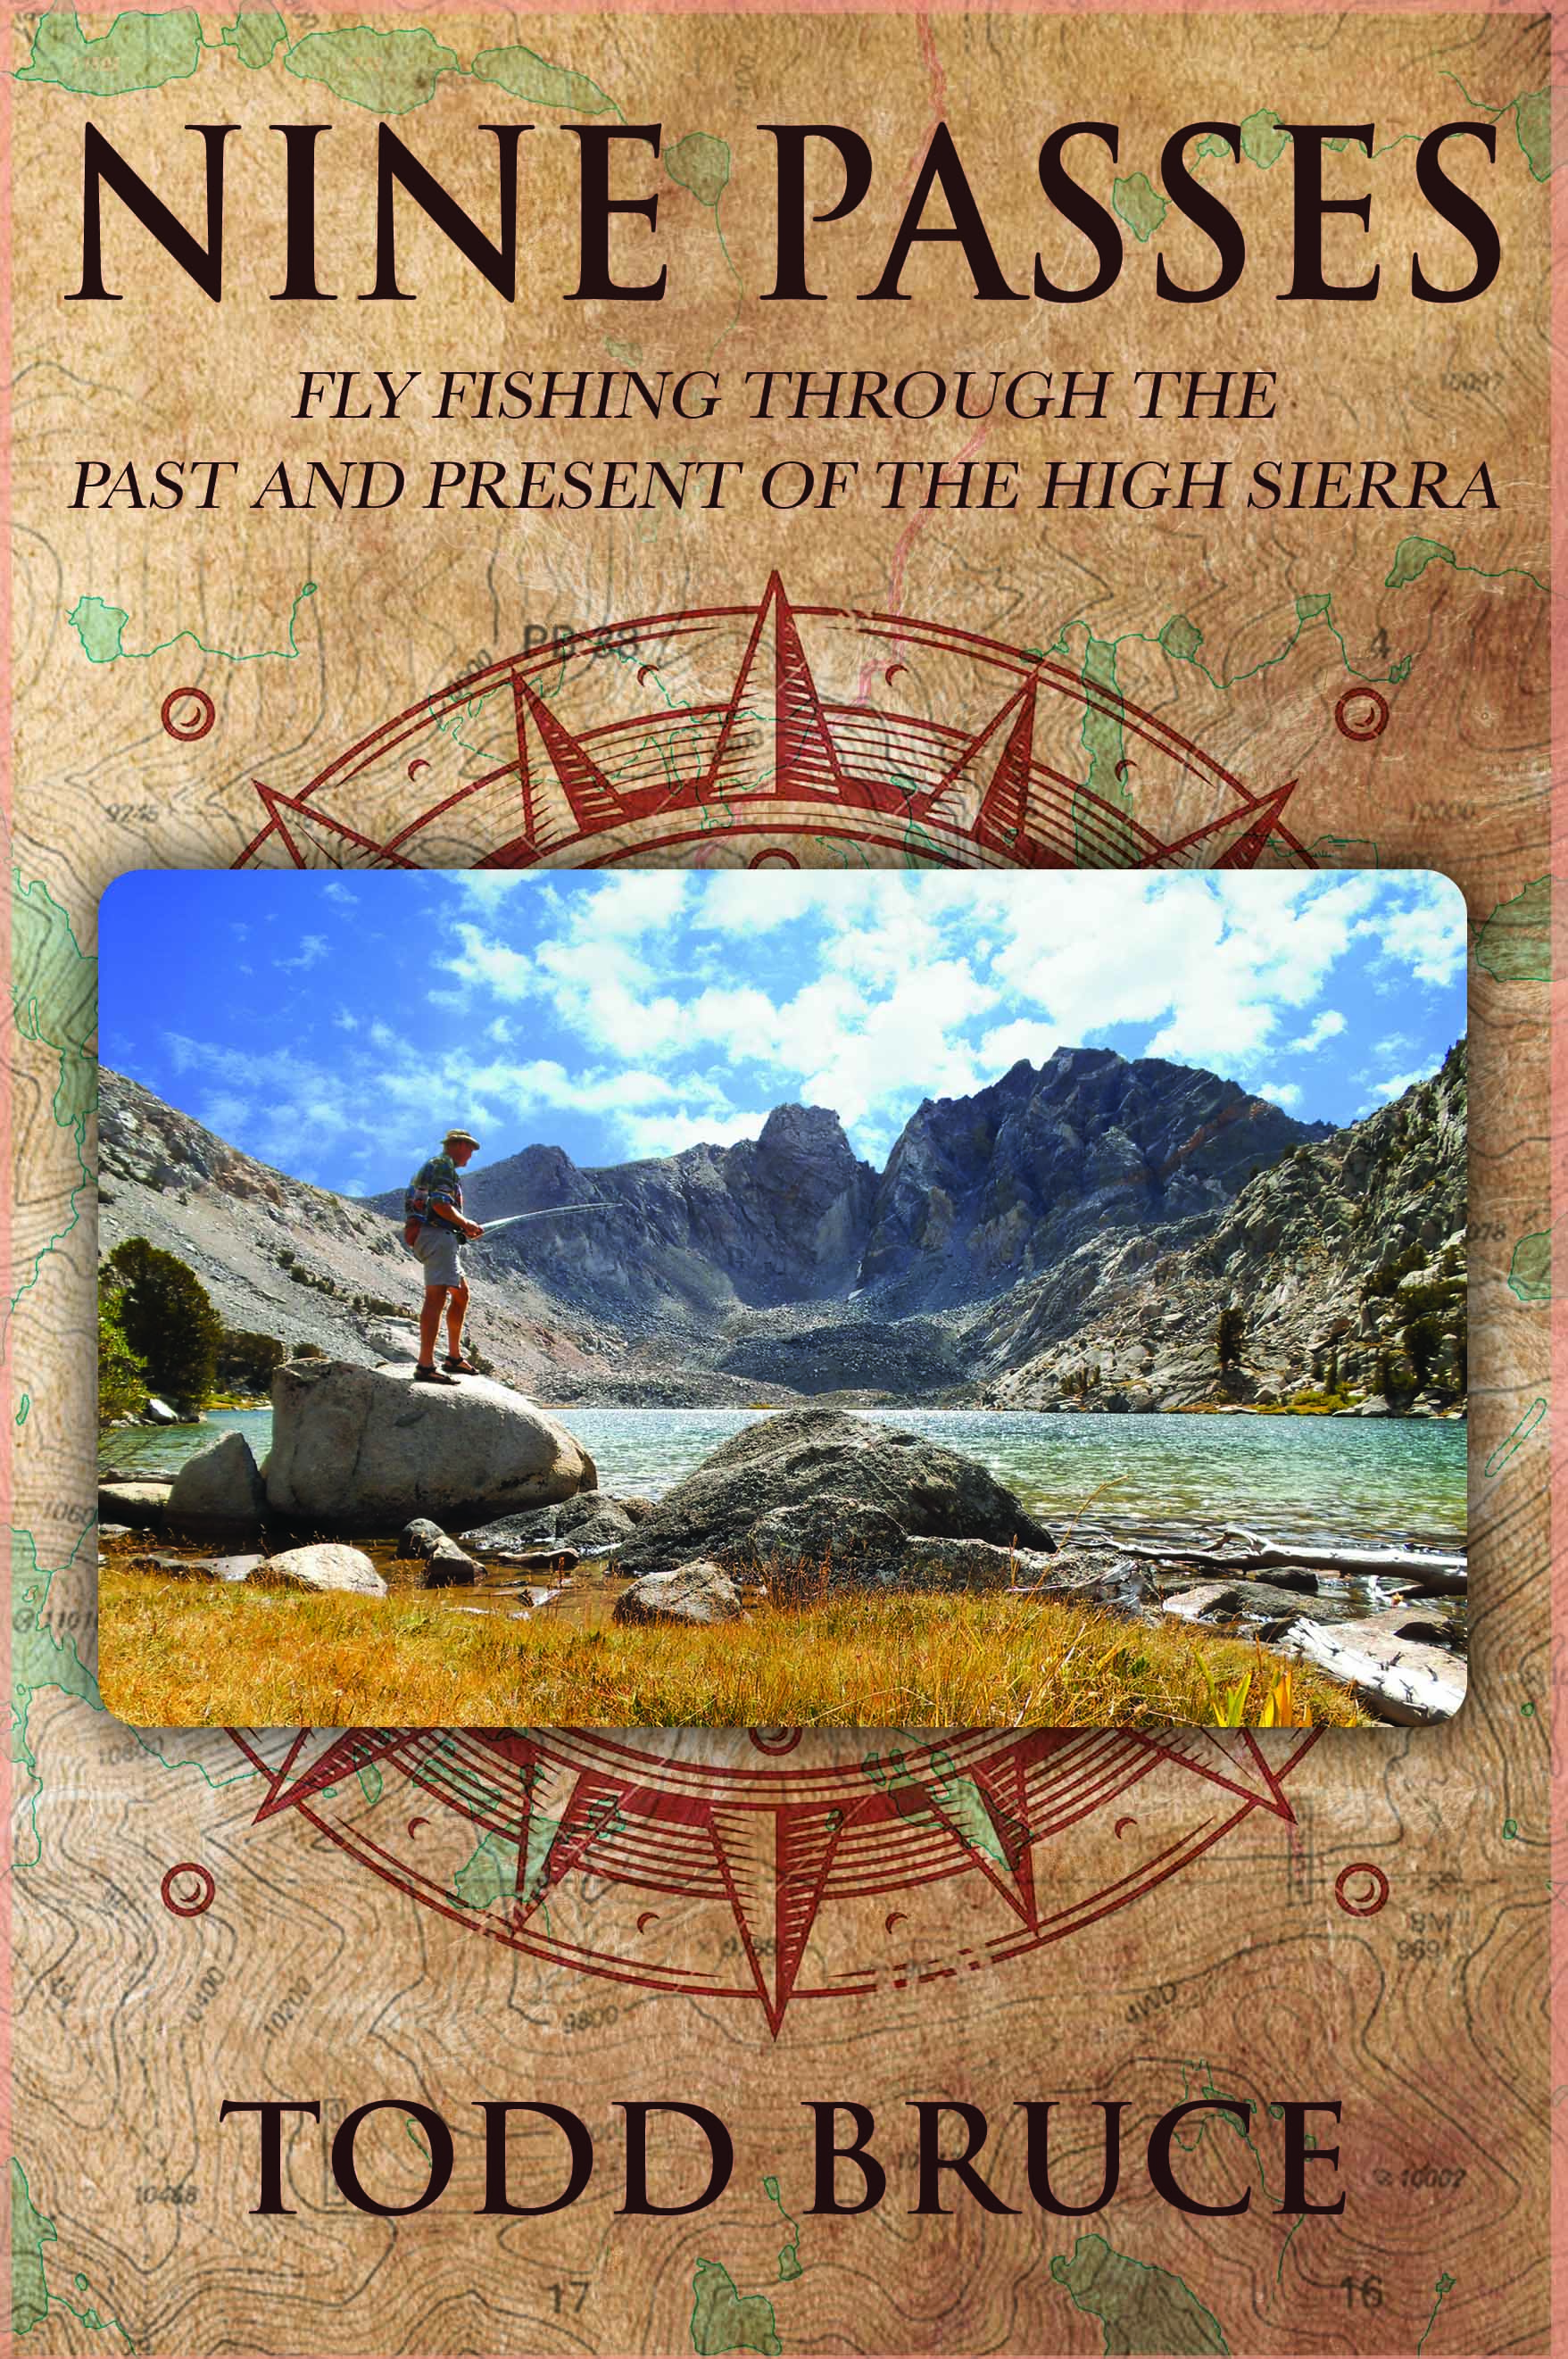 NINE PASSES: FLY FISHING THROUGH THE PAST & PRESENT OF THE HIGH SIERRA